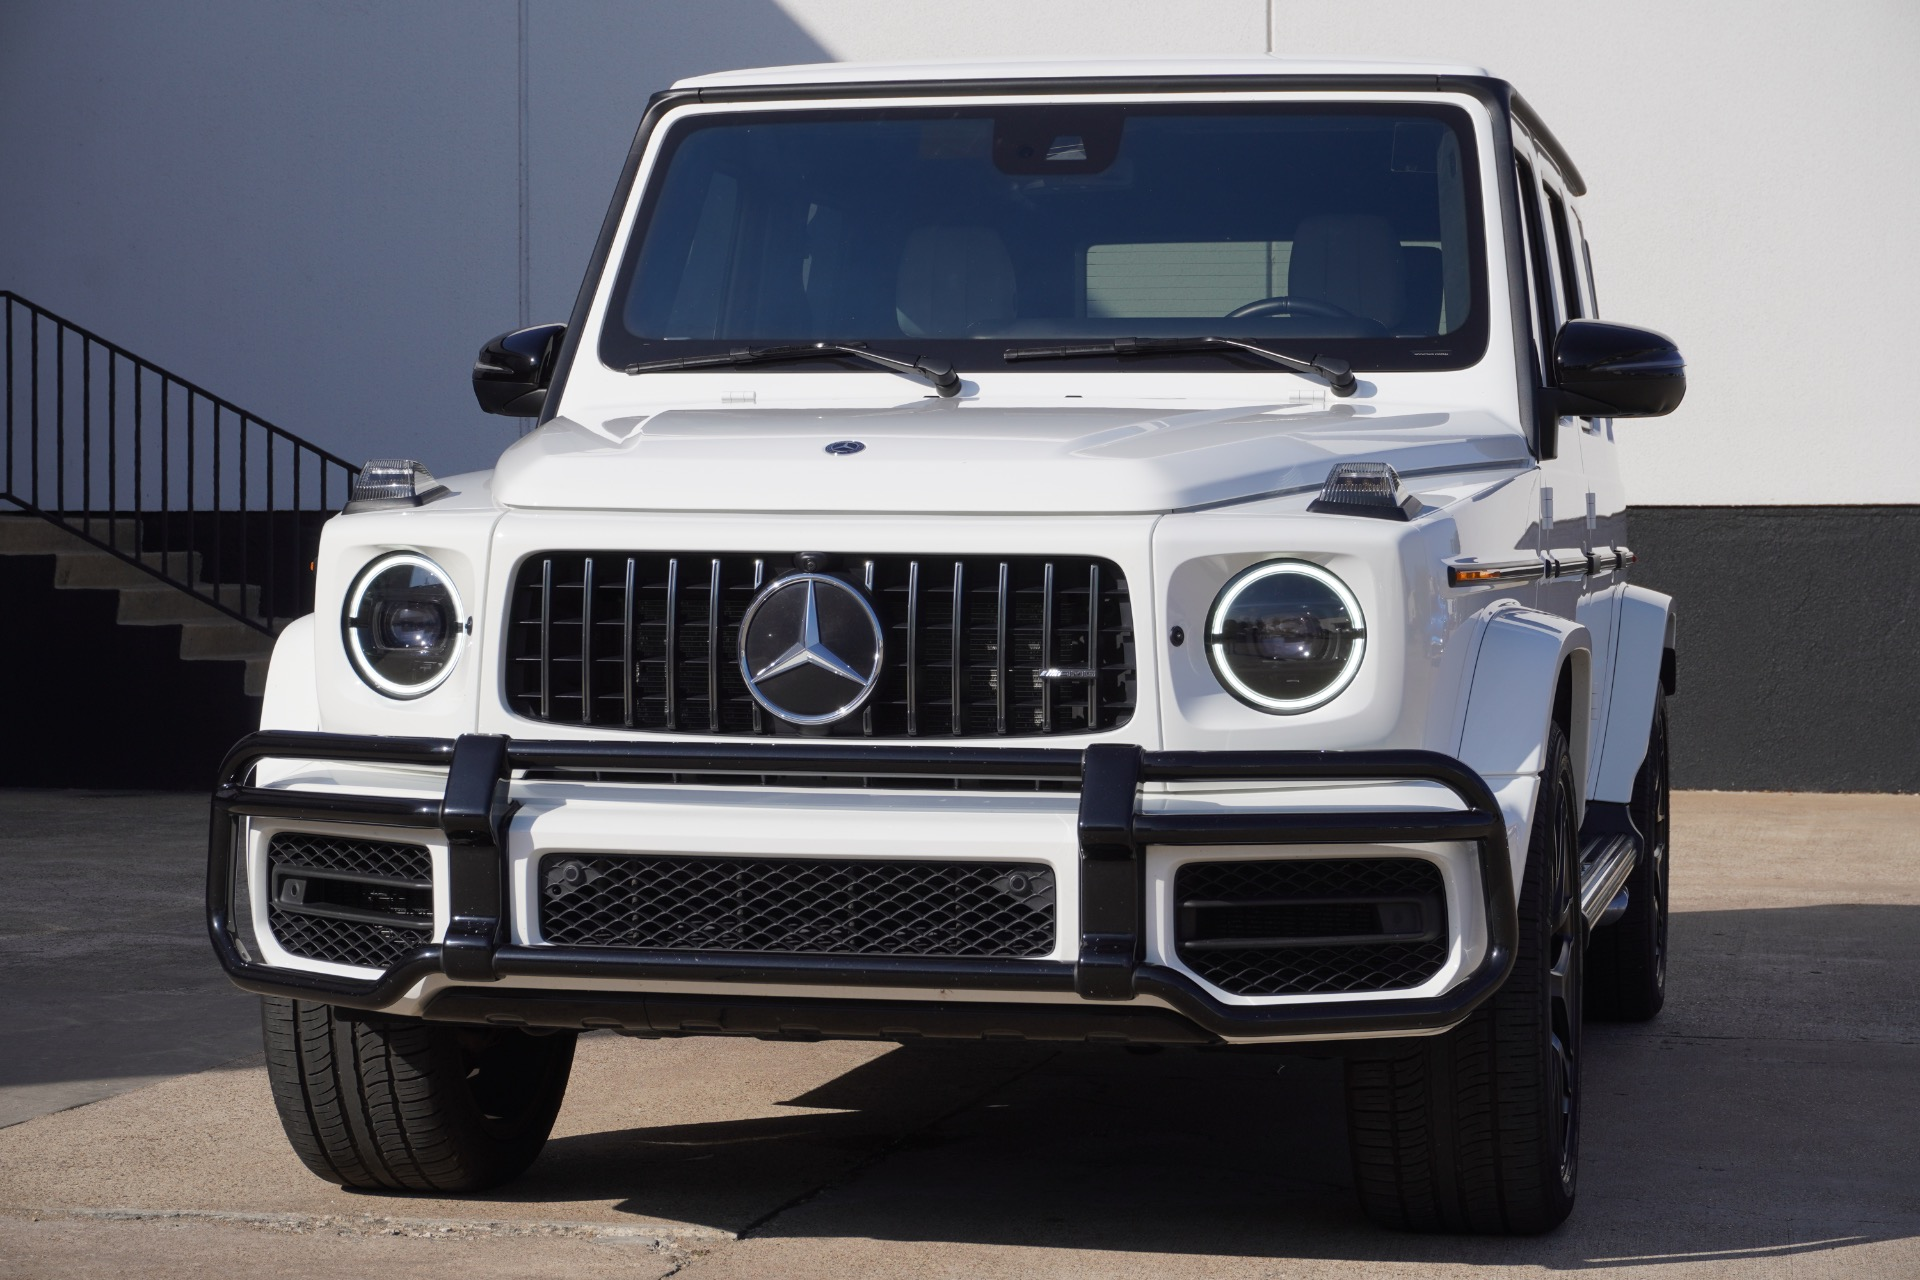 Used 2020 Mercedes Benz G Class Amg G 63 For Sale 219 900 Tactical Fleet Stock Tf1445